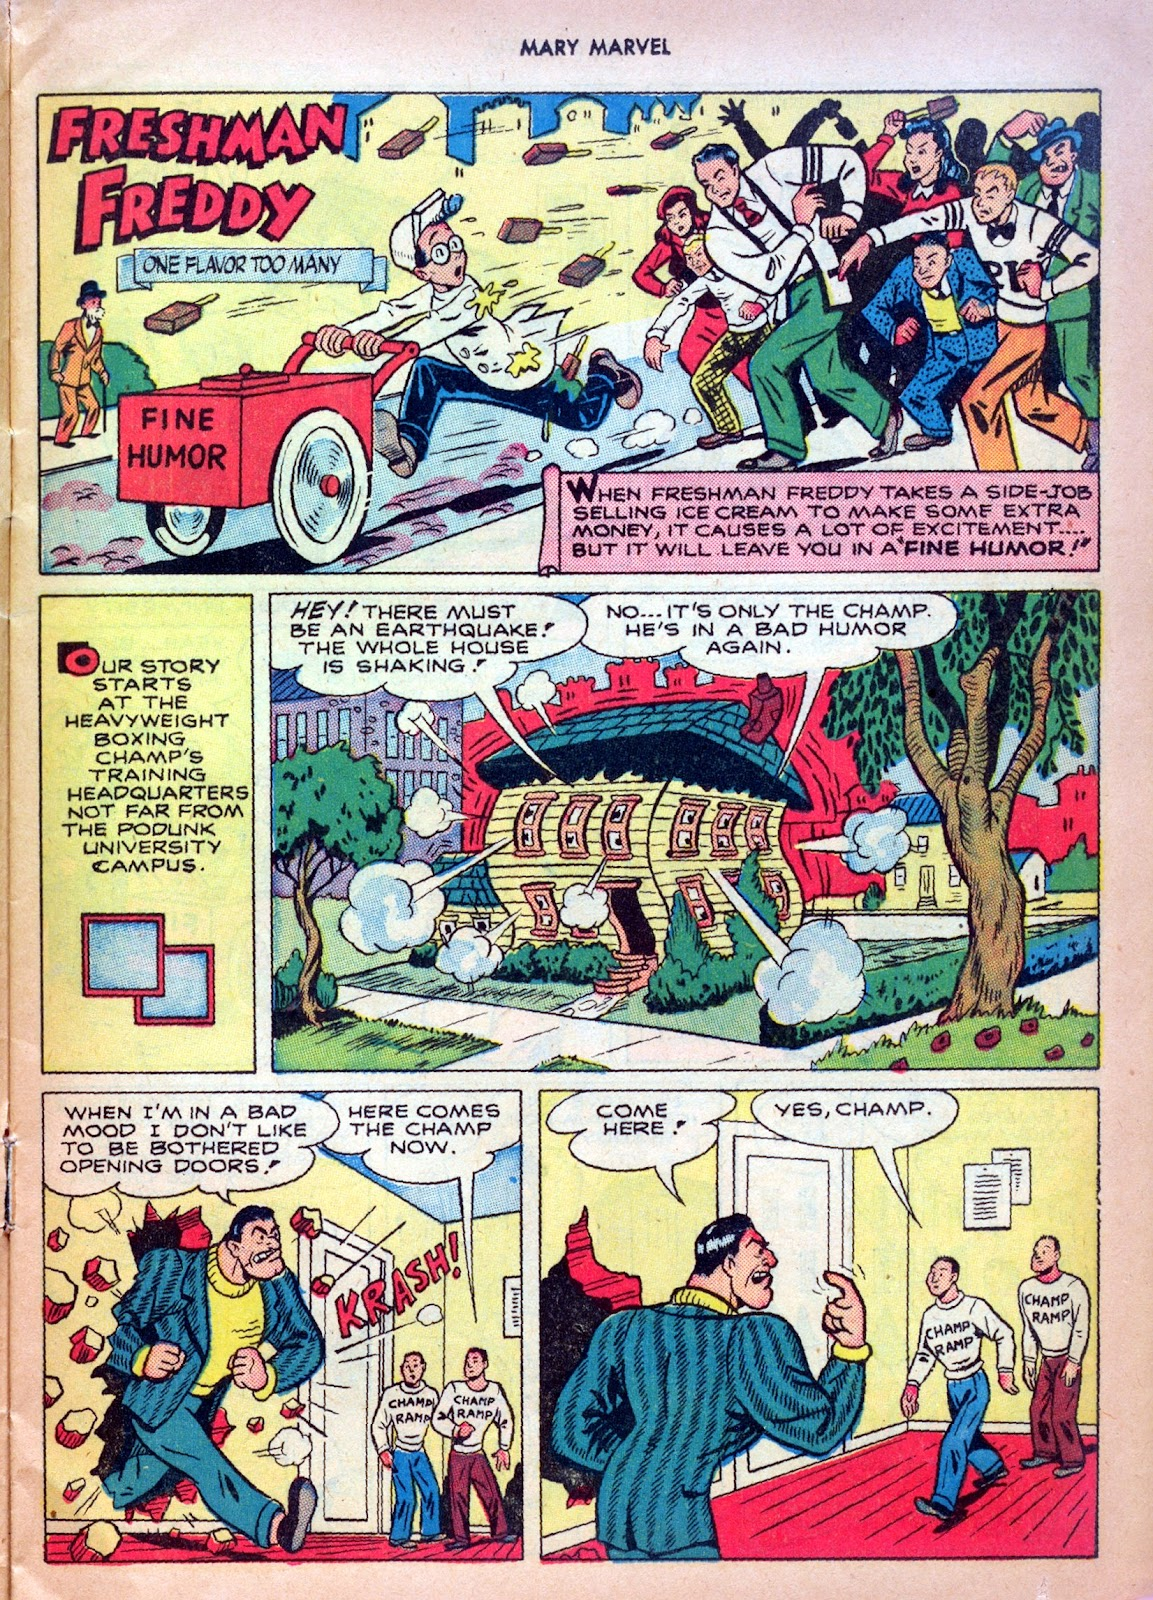 Read online Mary Marvel comic -  Issue #27 - 13